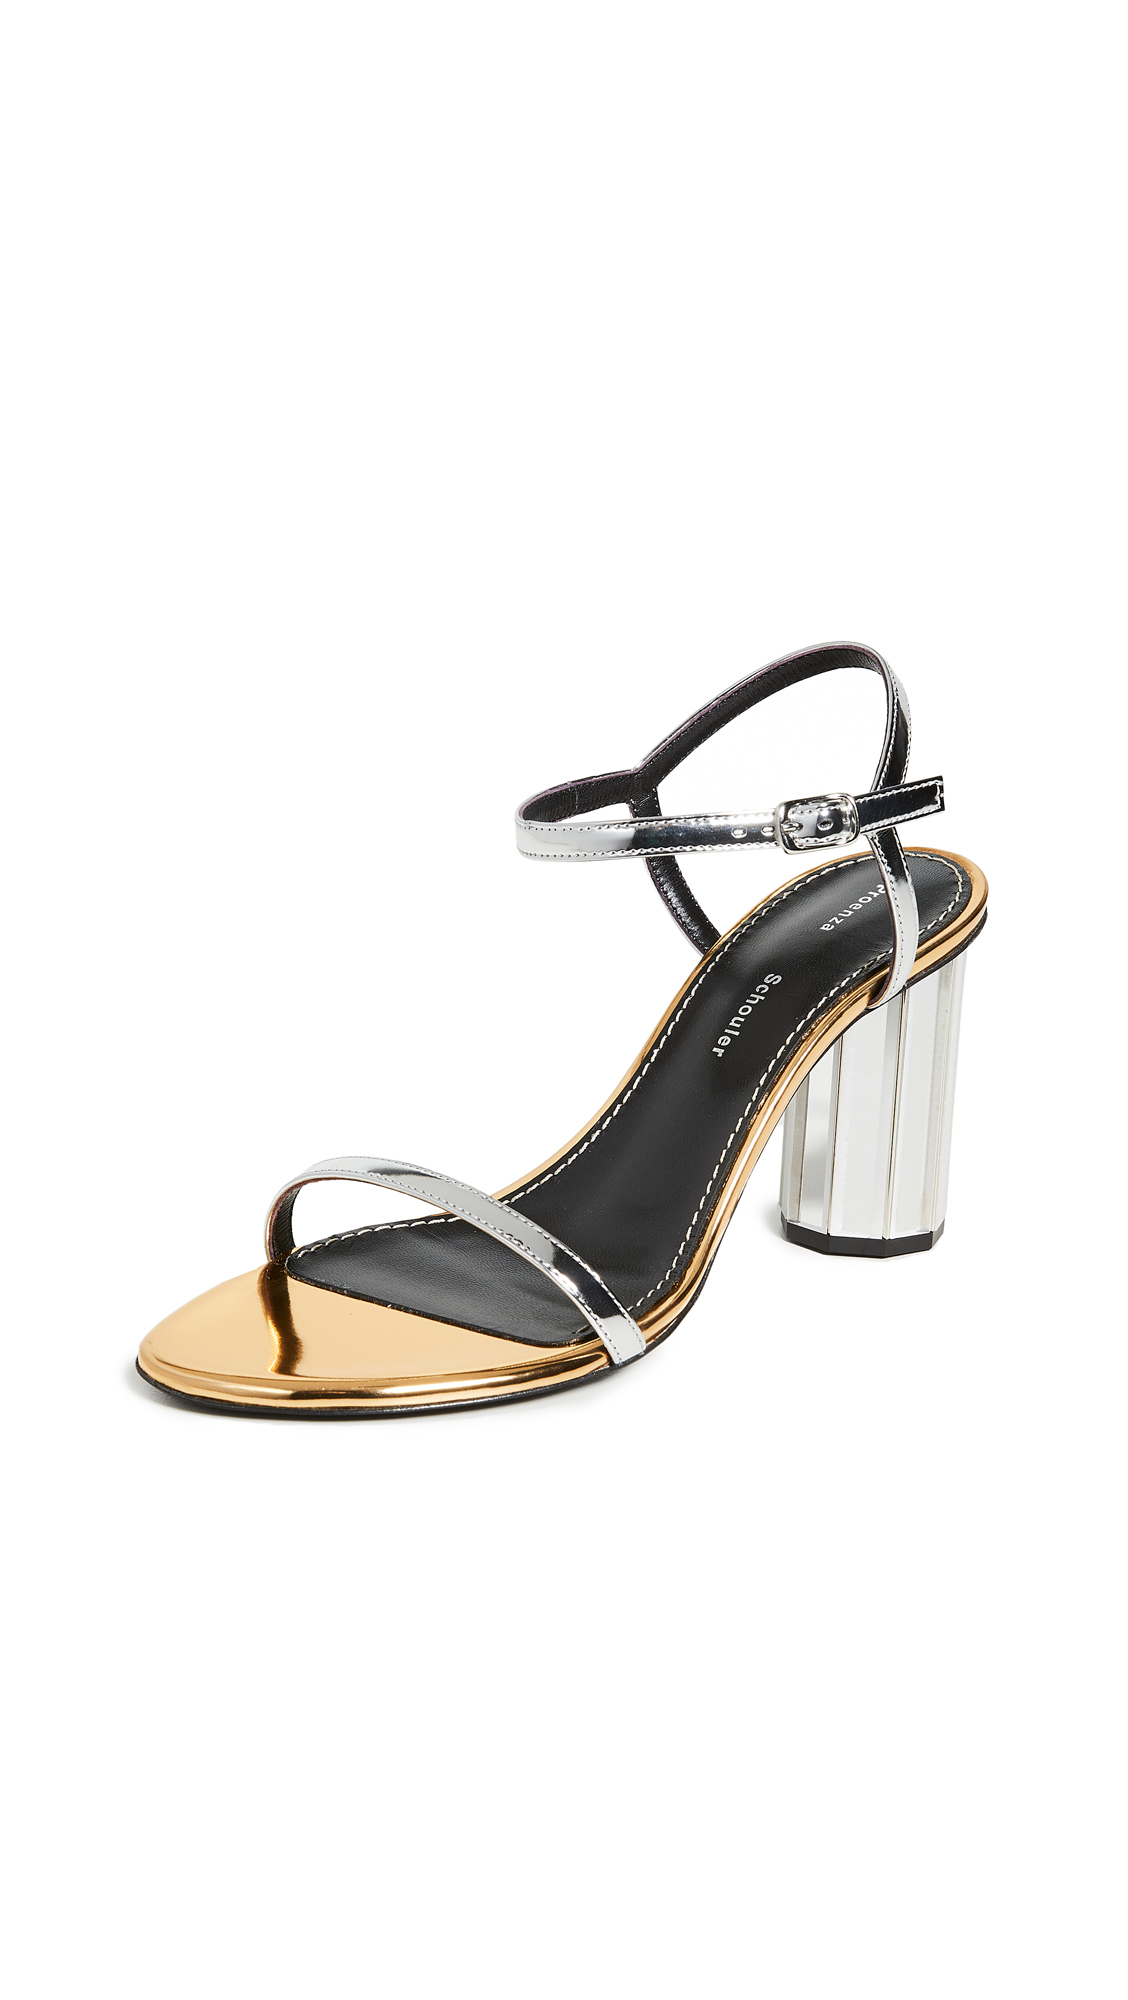 Proenza Schouler Metallic Sandals - 40% Off Sale